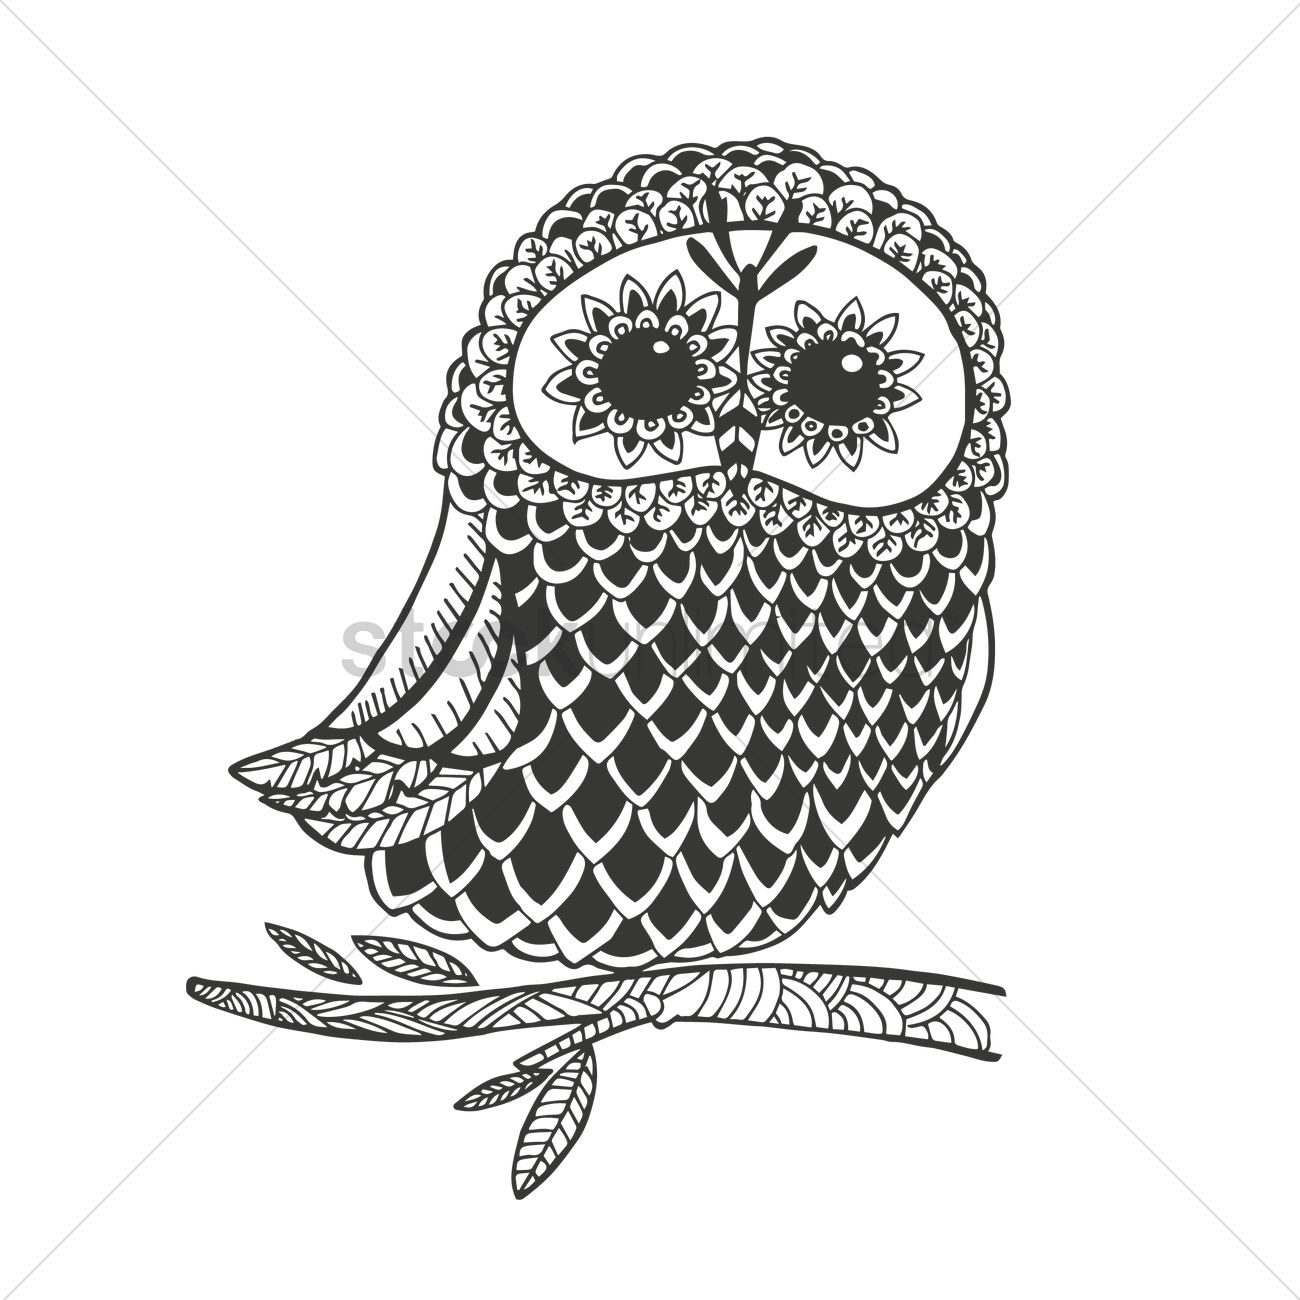 Intricate Owl Design Vector Image 1544172 Stockunlimited